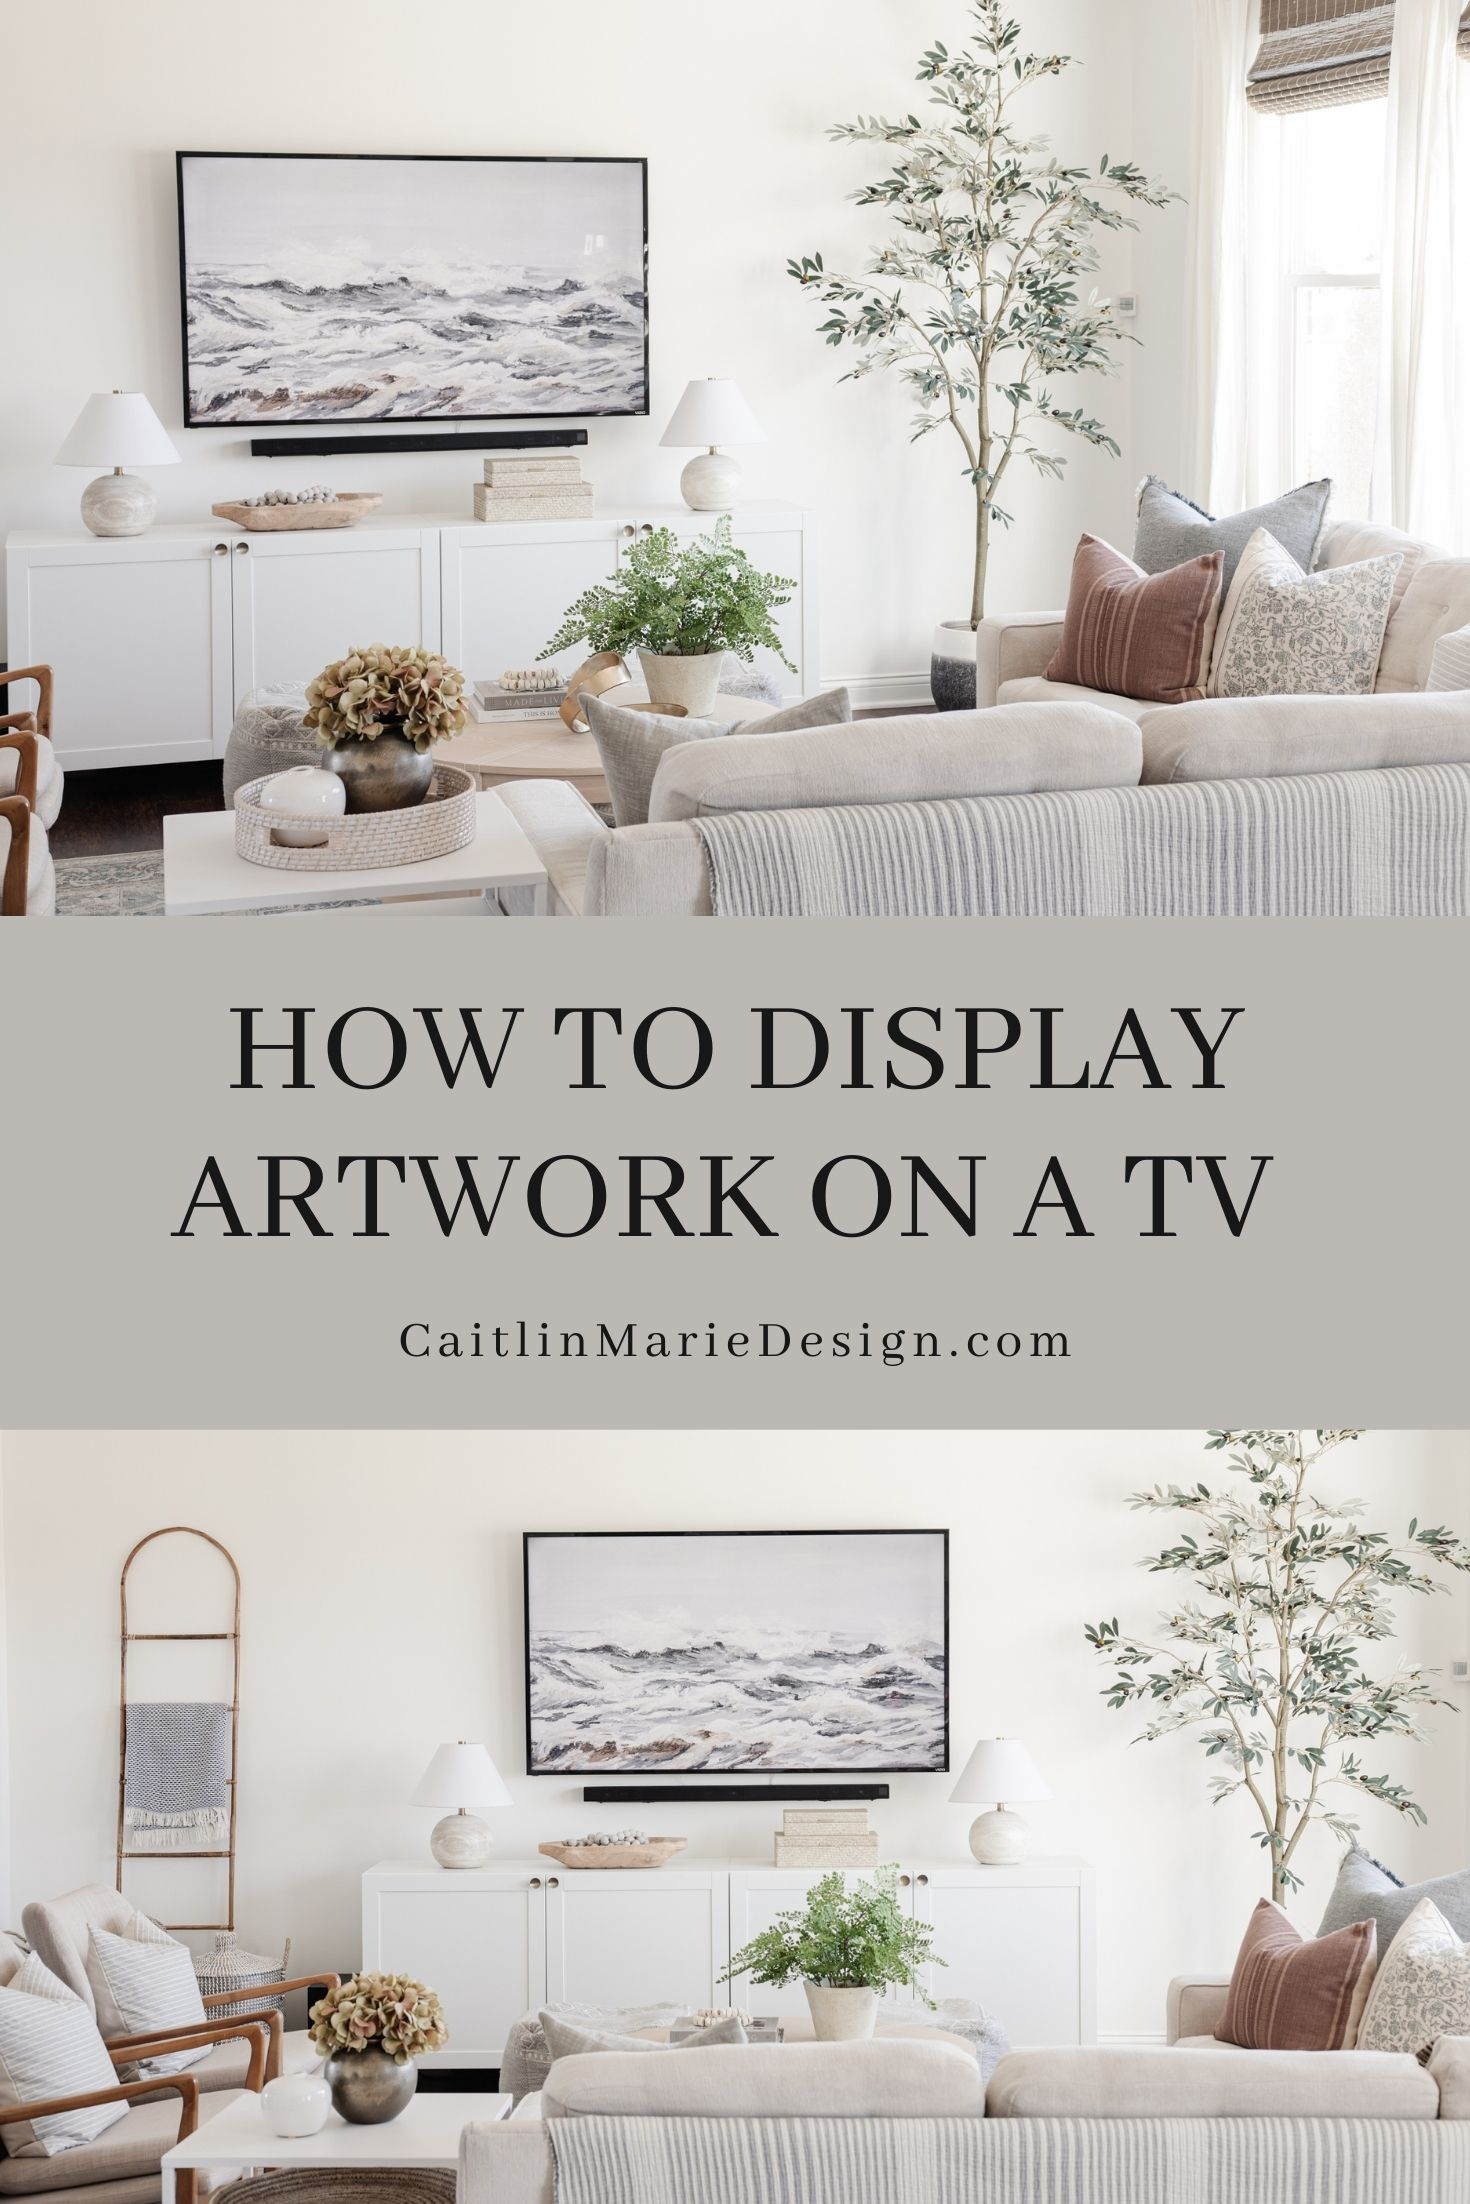 How to Display Artwork on a TV Pinterest Image